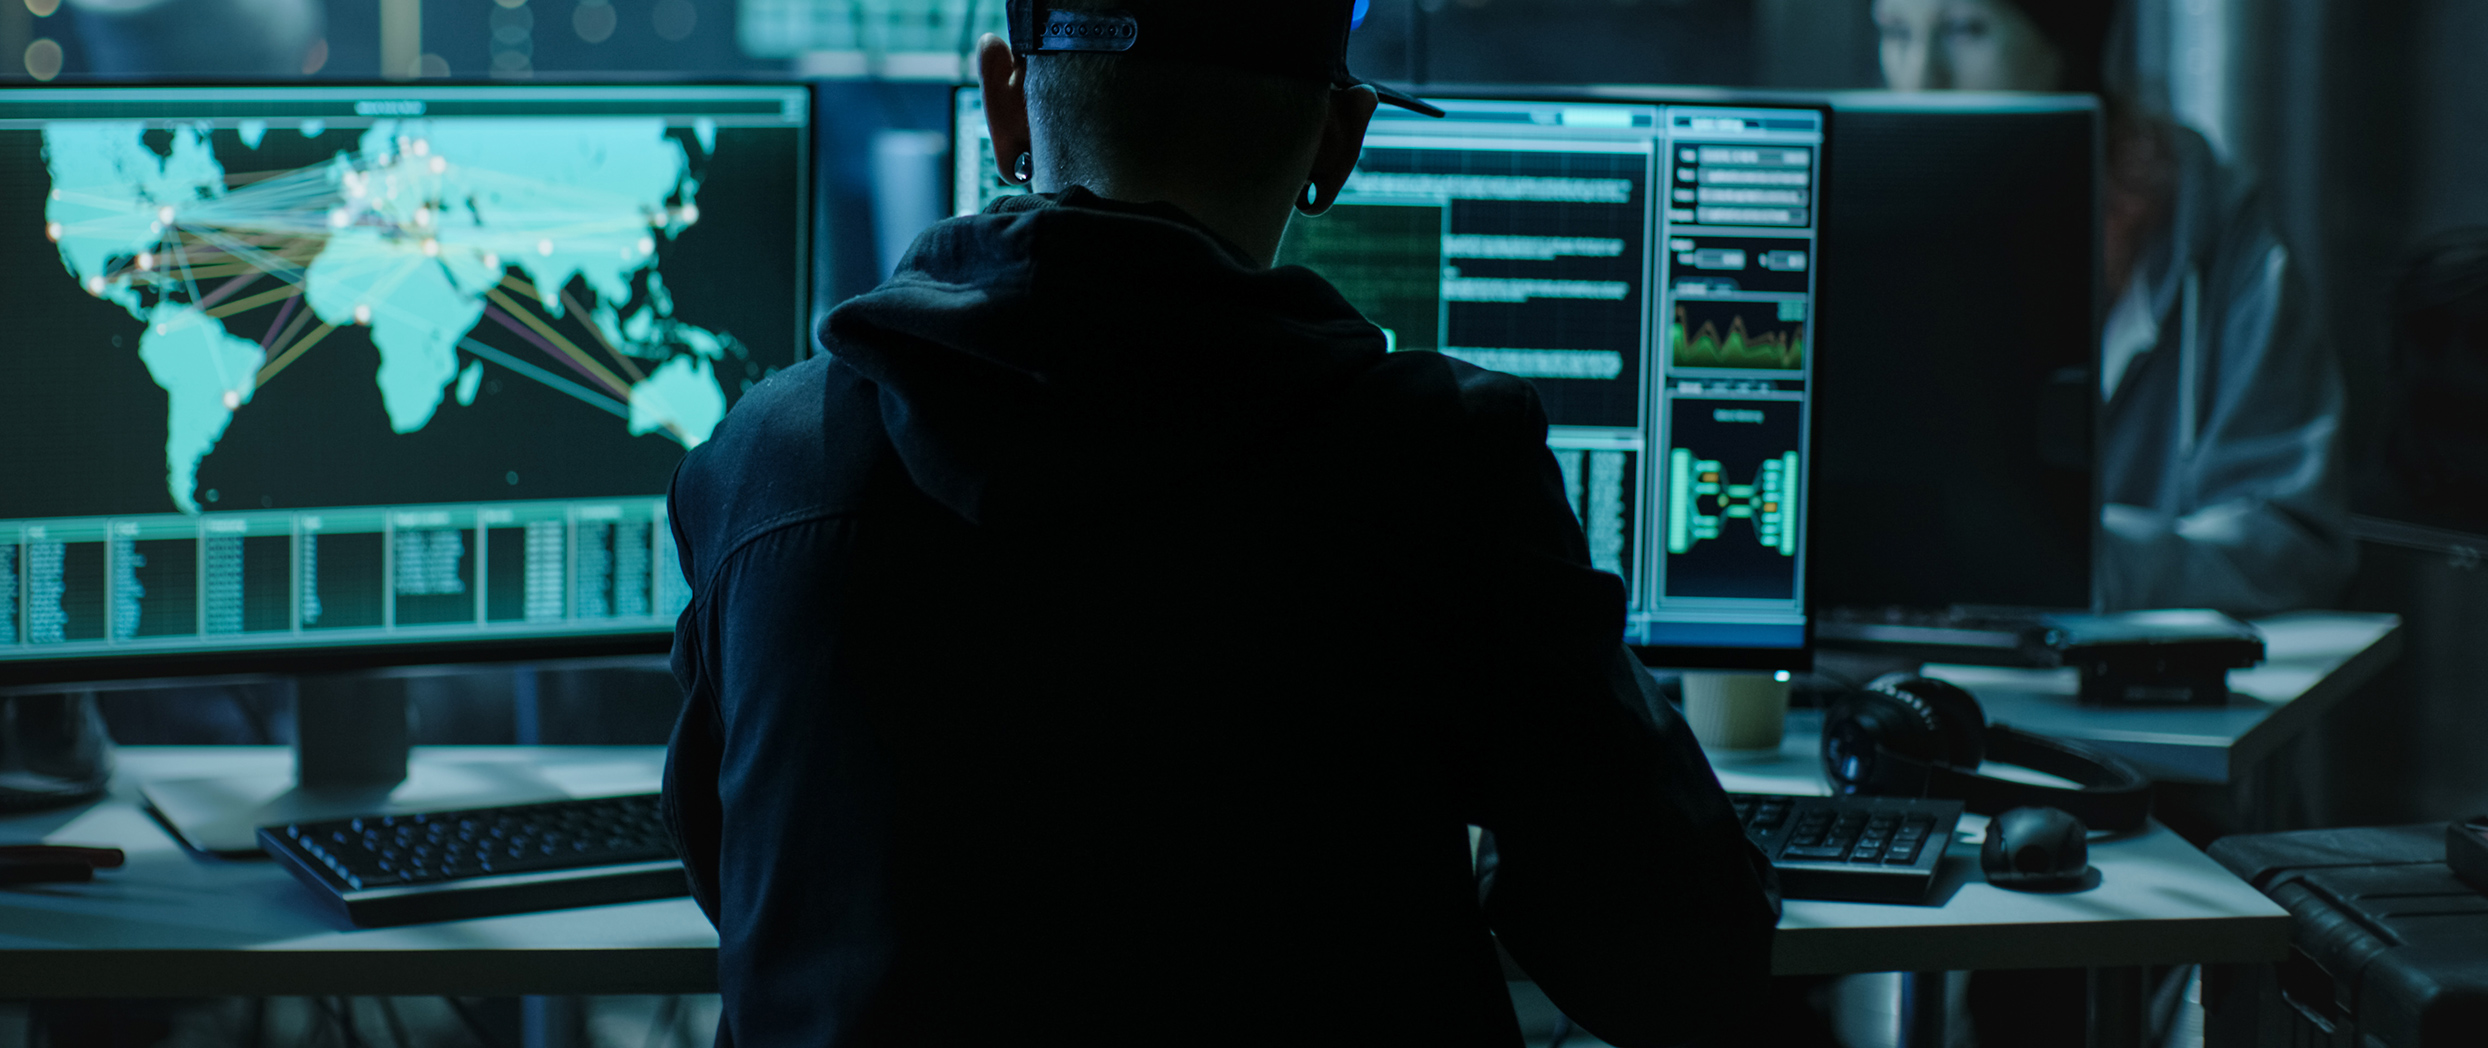 The cybercriminal protagonists of 2019: ransomware, phishing and critical infrastructure